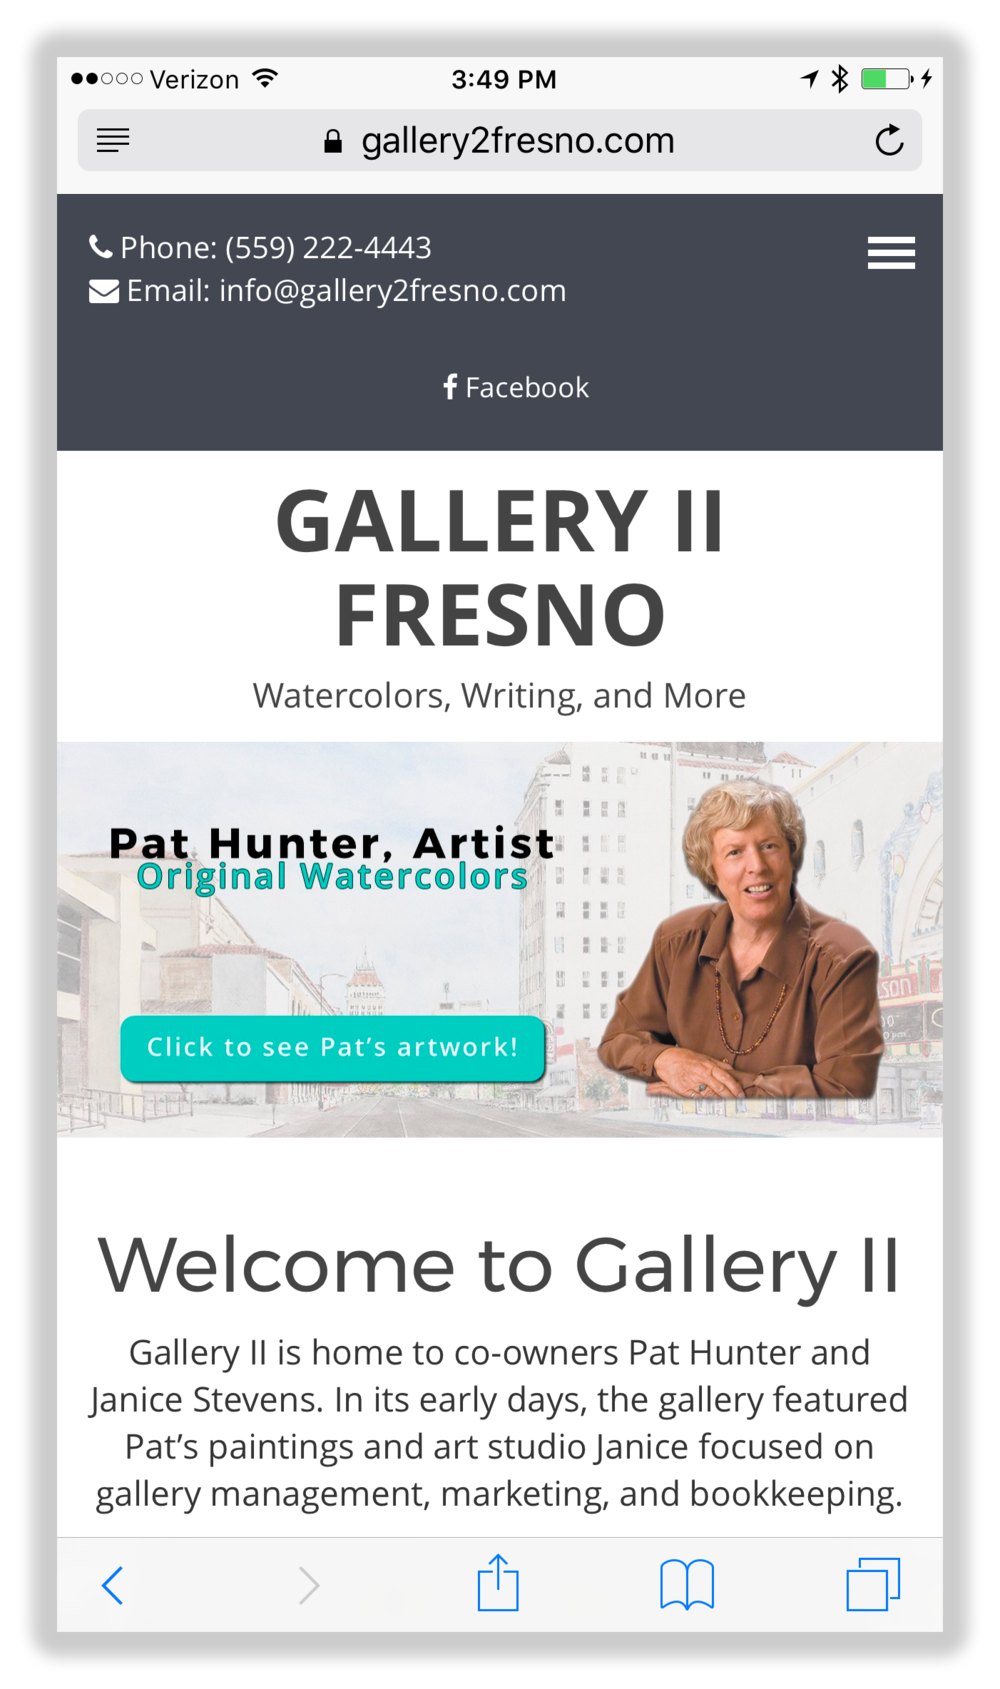 the-chatter-box-guys-web-design-gallery-ii-fresno-mobile.png